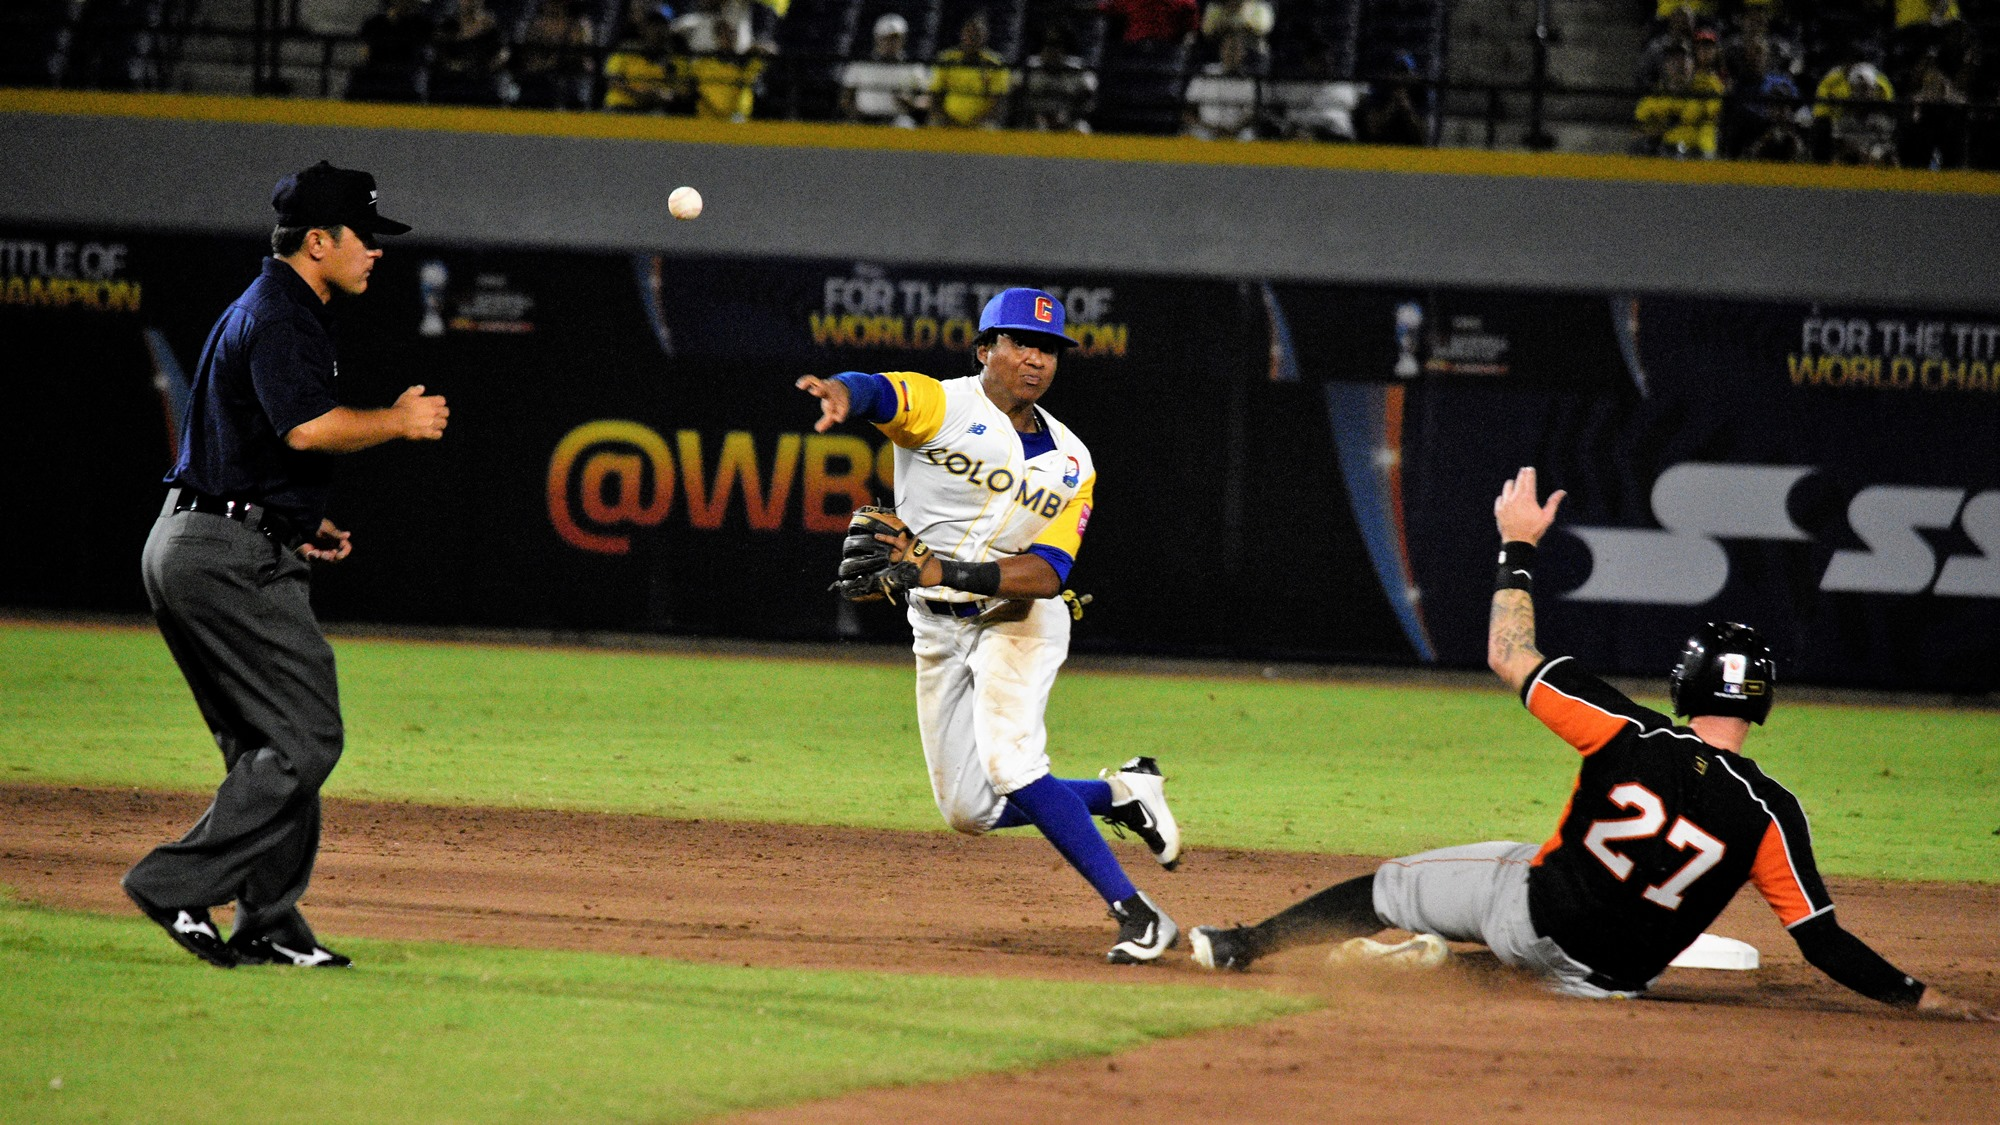 Early in the game Colombia manufactured two double plays. Milton Ramos turns one over Ruar Verker